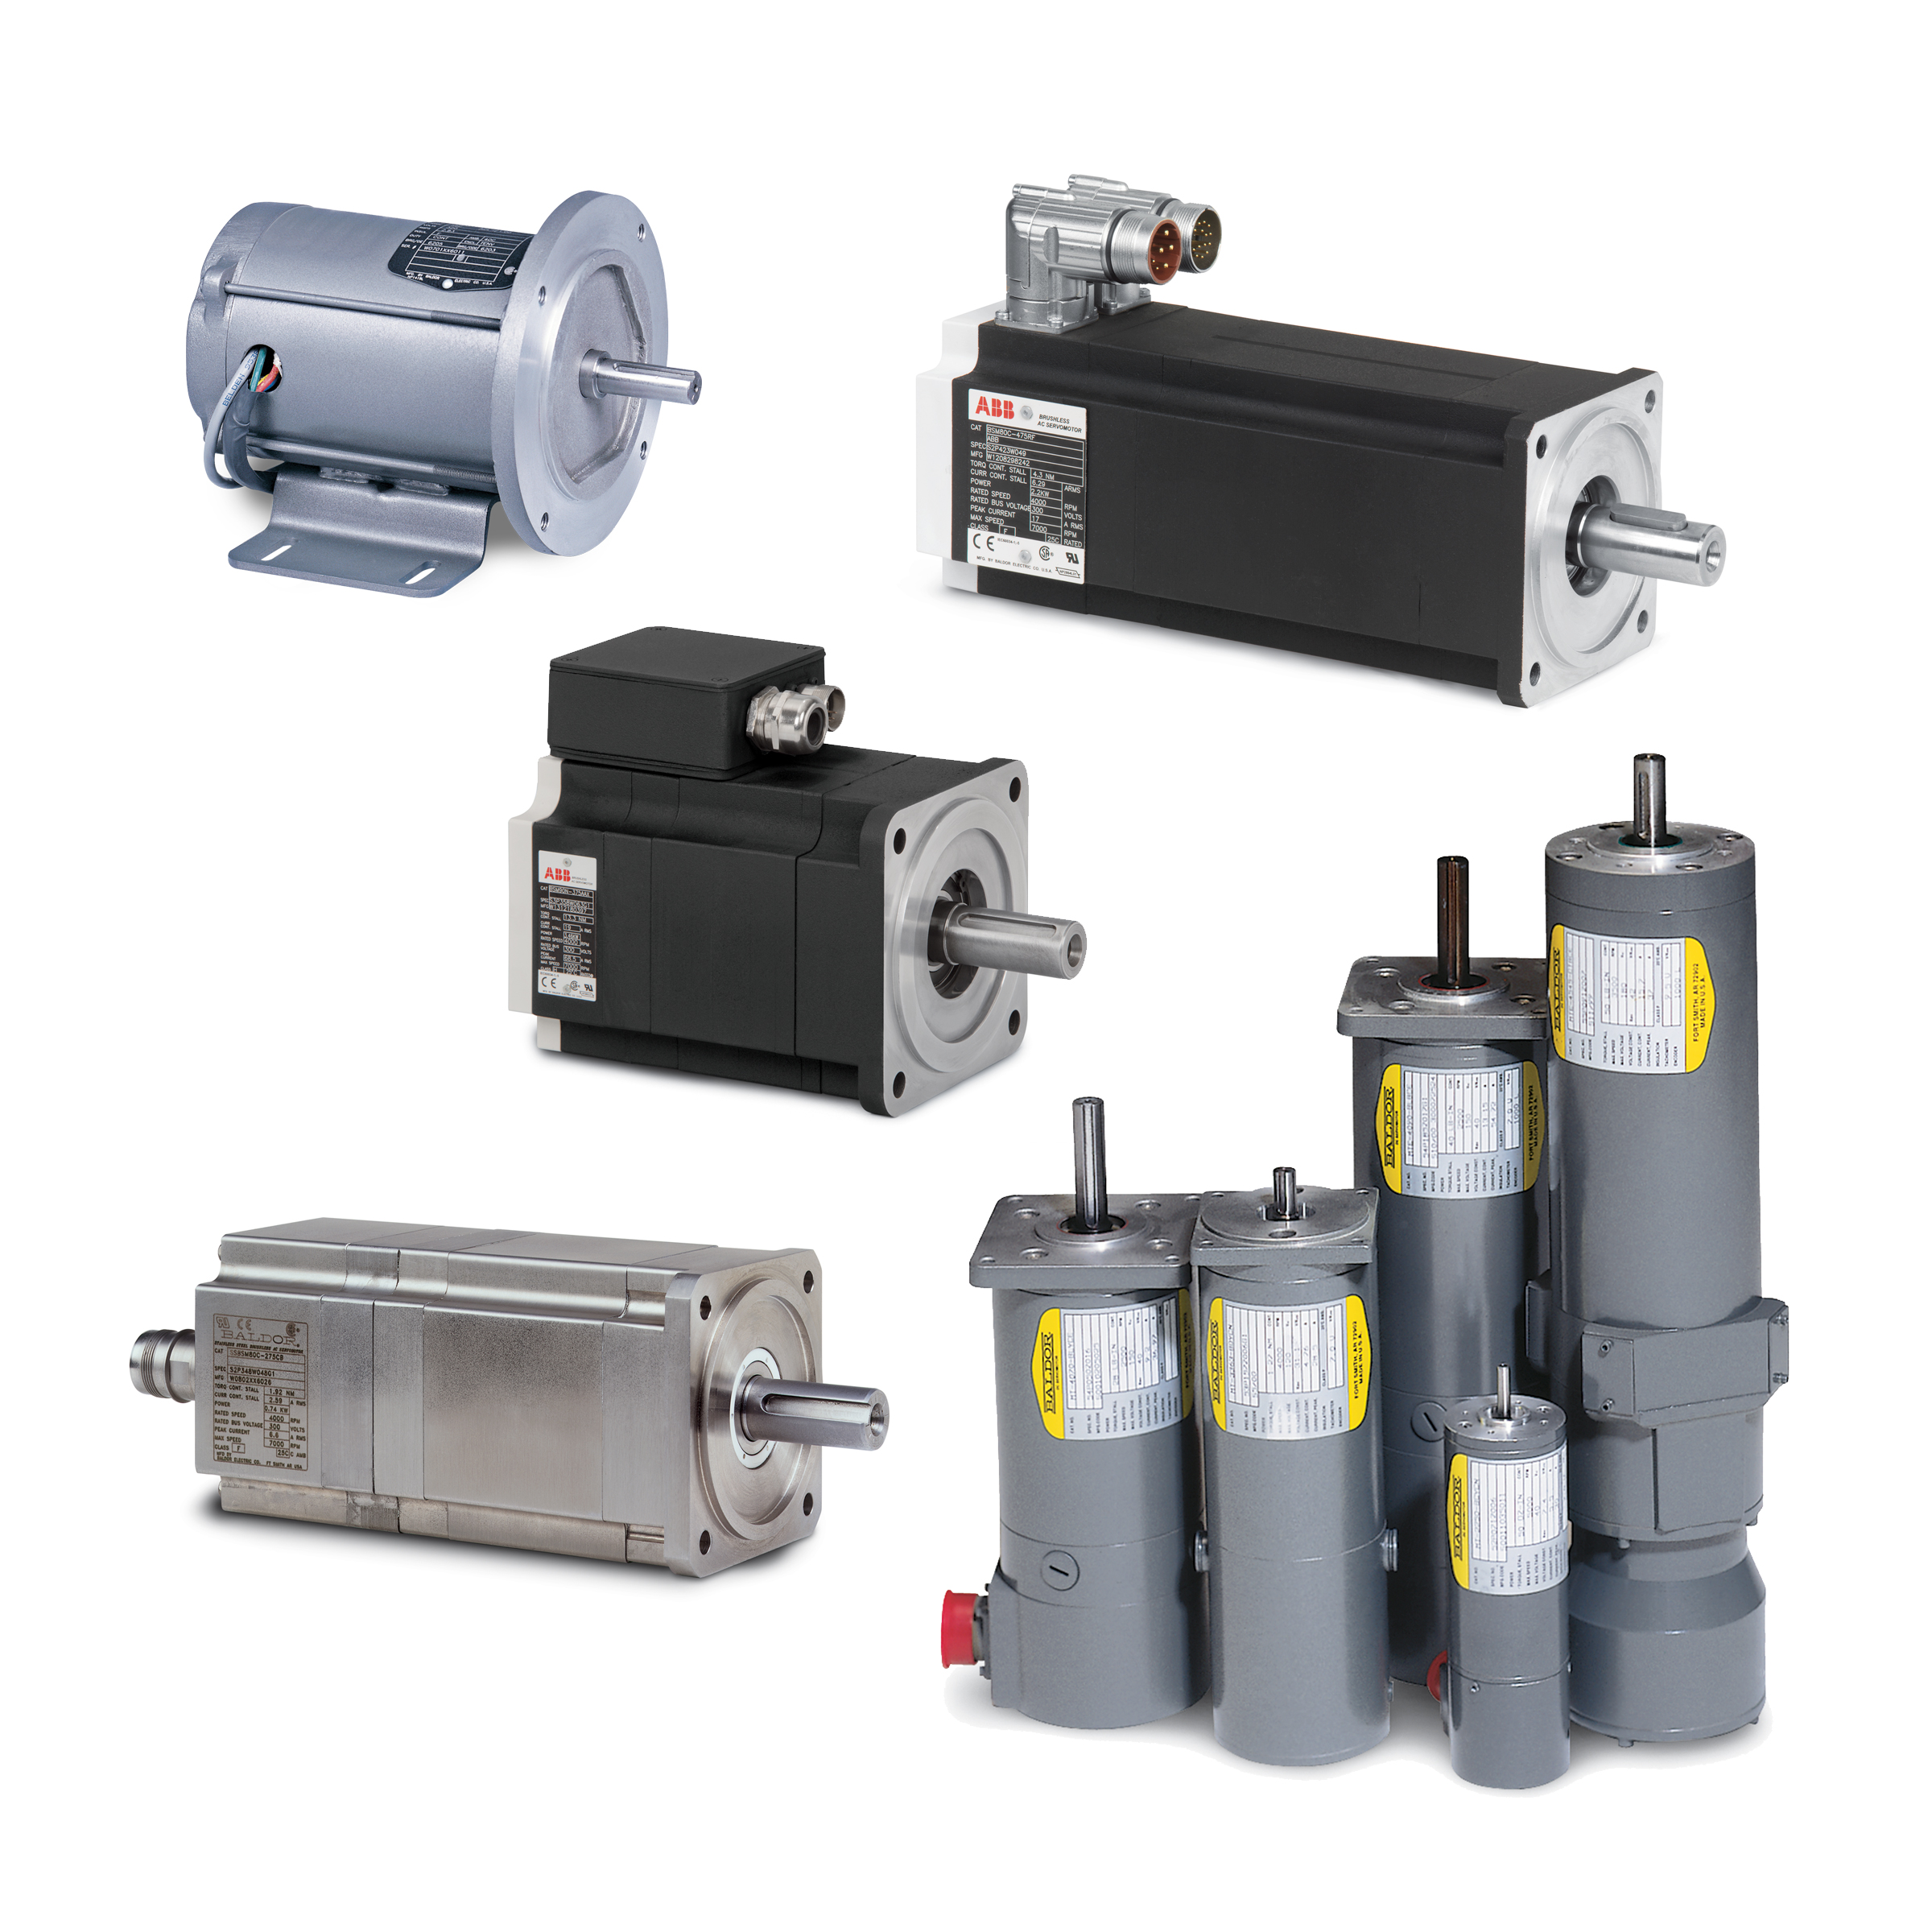 servo motors Mitsubishi electric fa site introduces information in latest information, product information, technological material, and the catalog, etc on computerized numerical controllers(cncs) (servo motors.